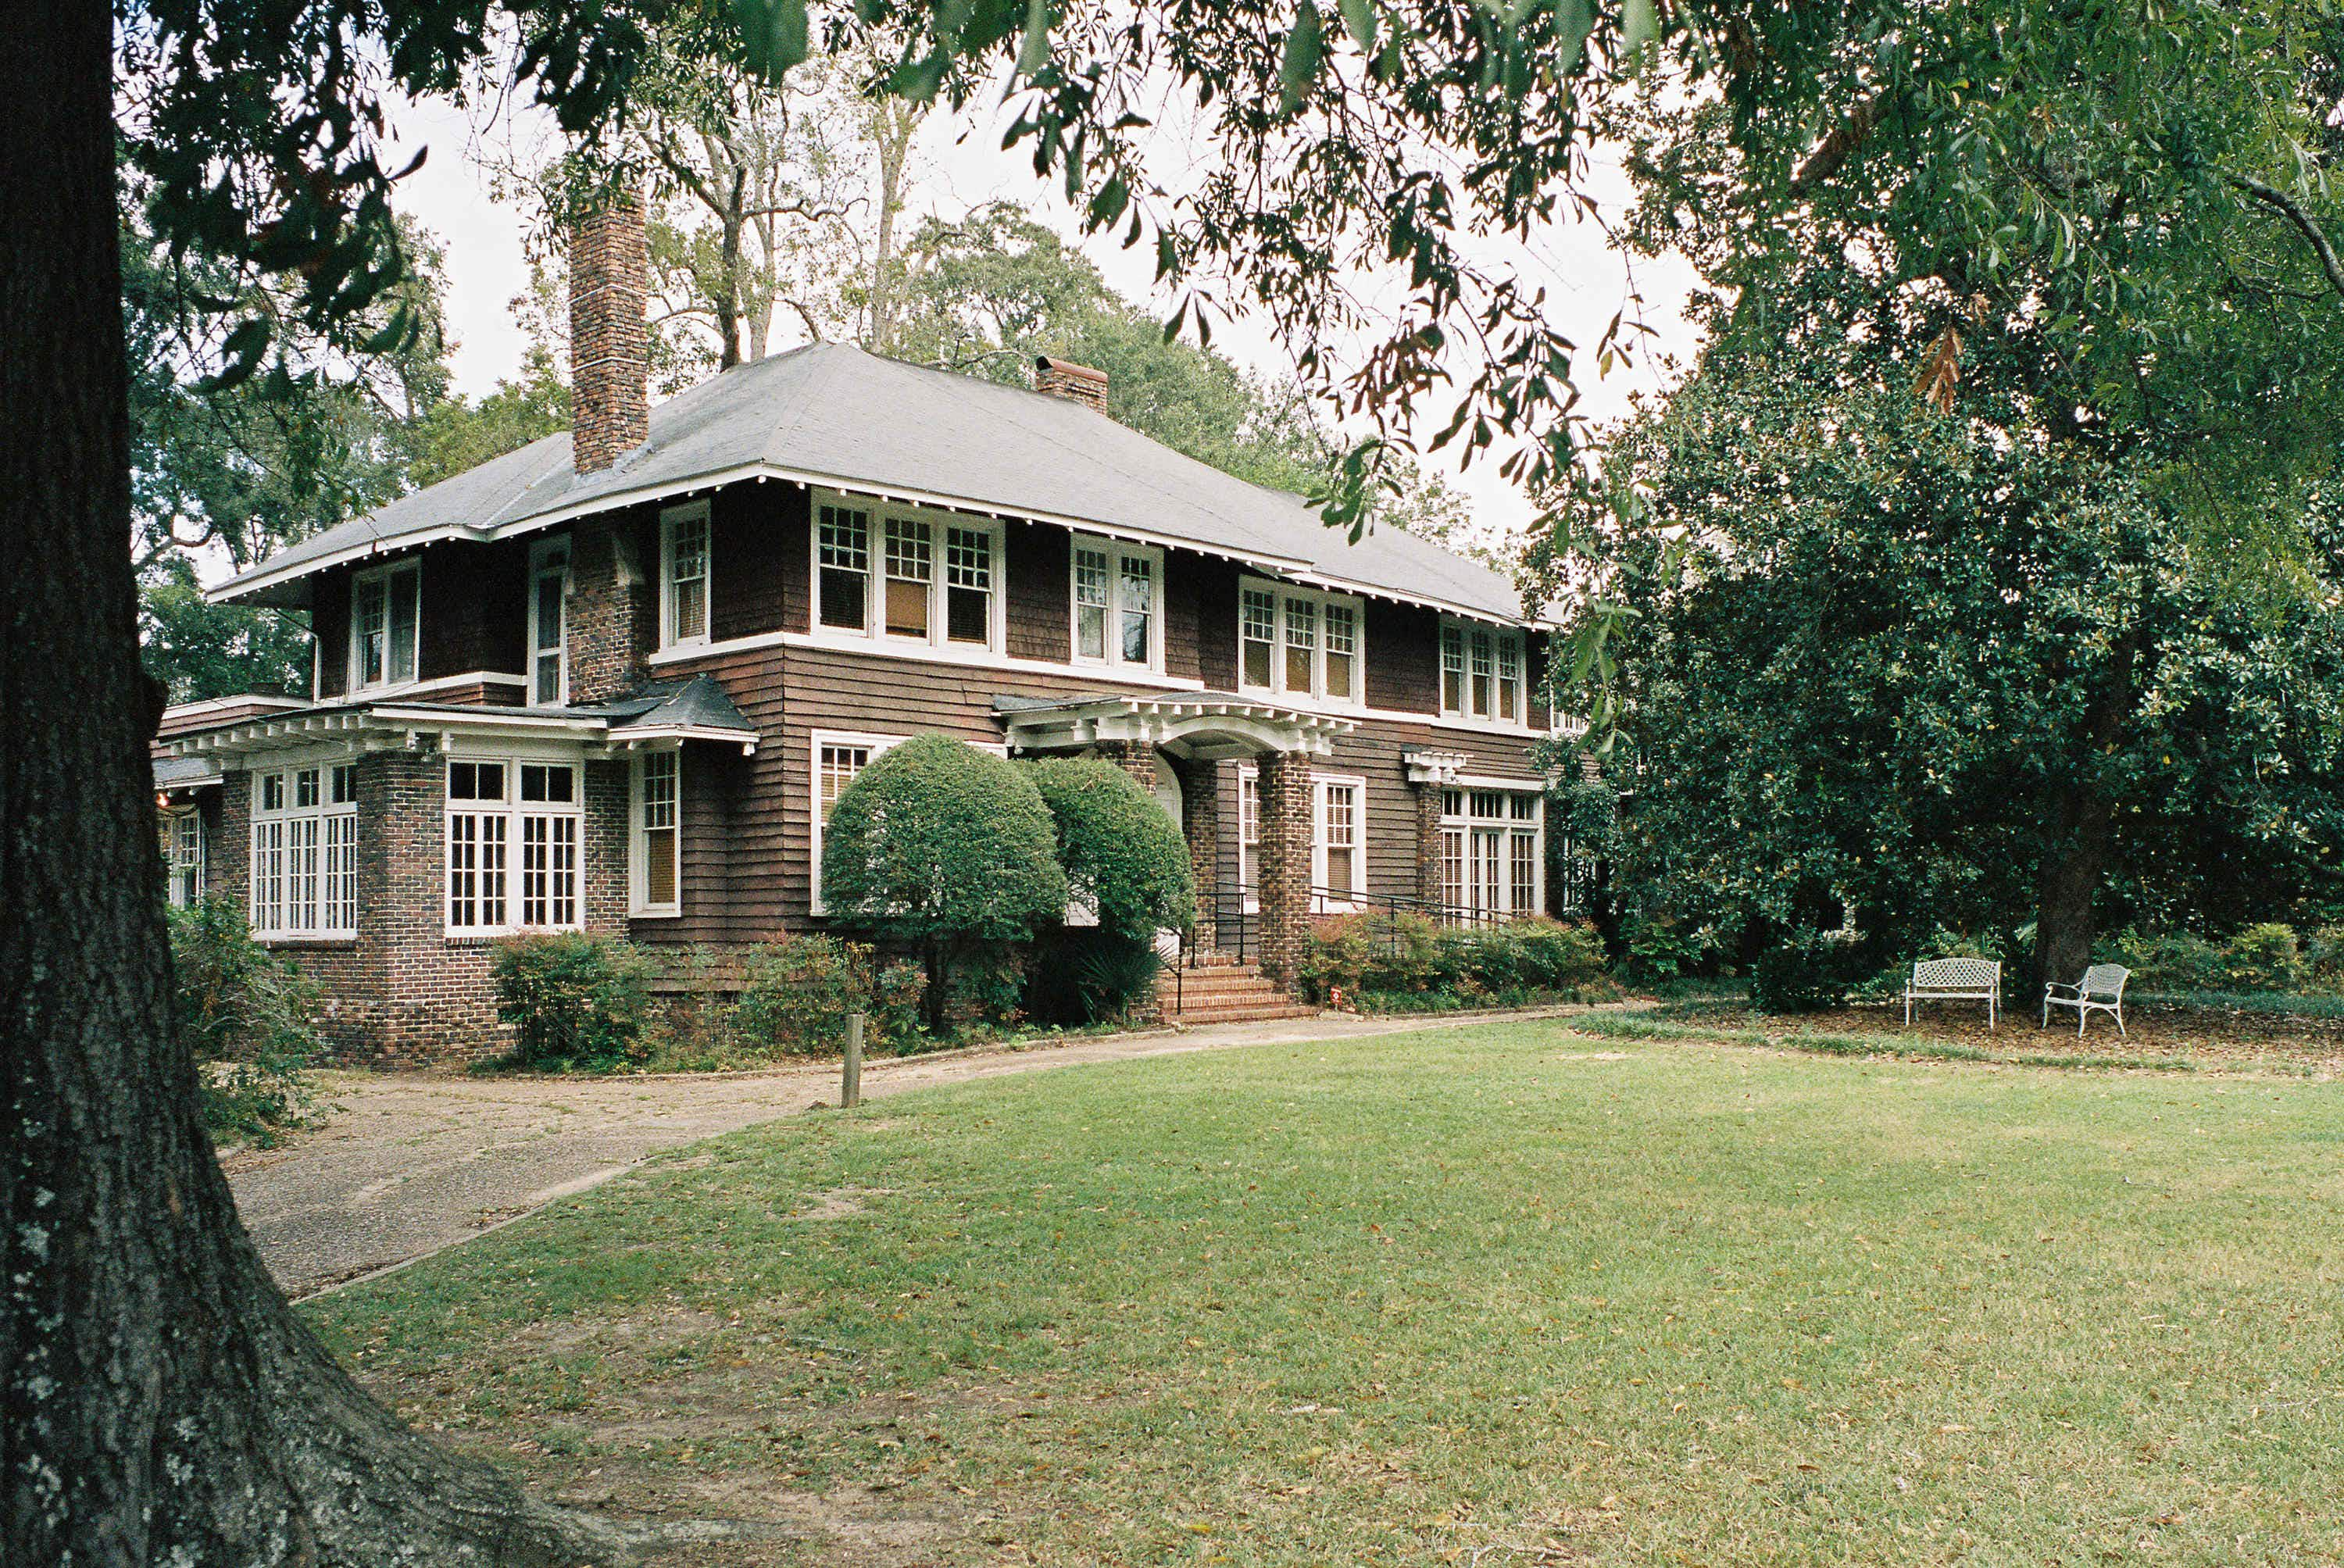 Now you can spend the night in the former home of Zelda and F. Scott Fitzgerald